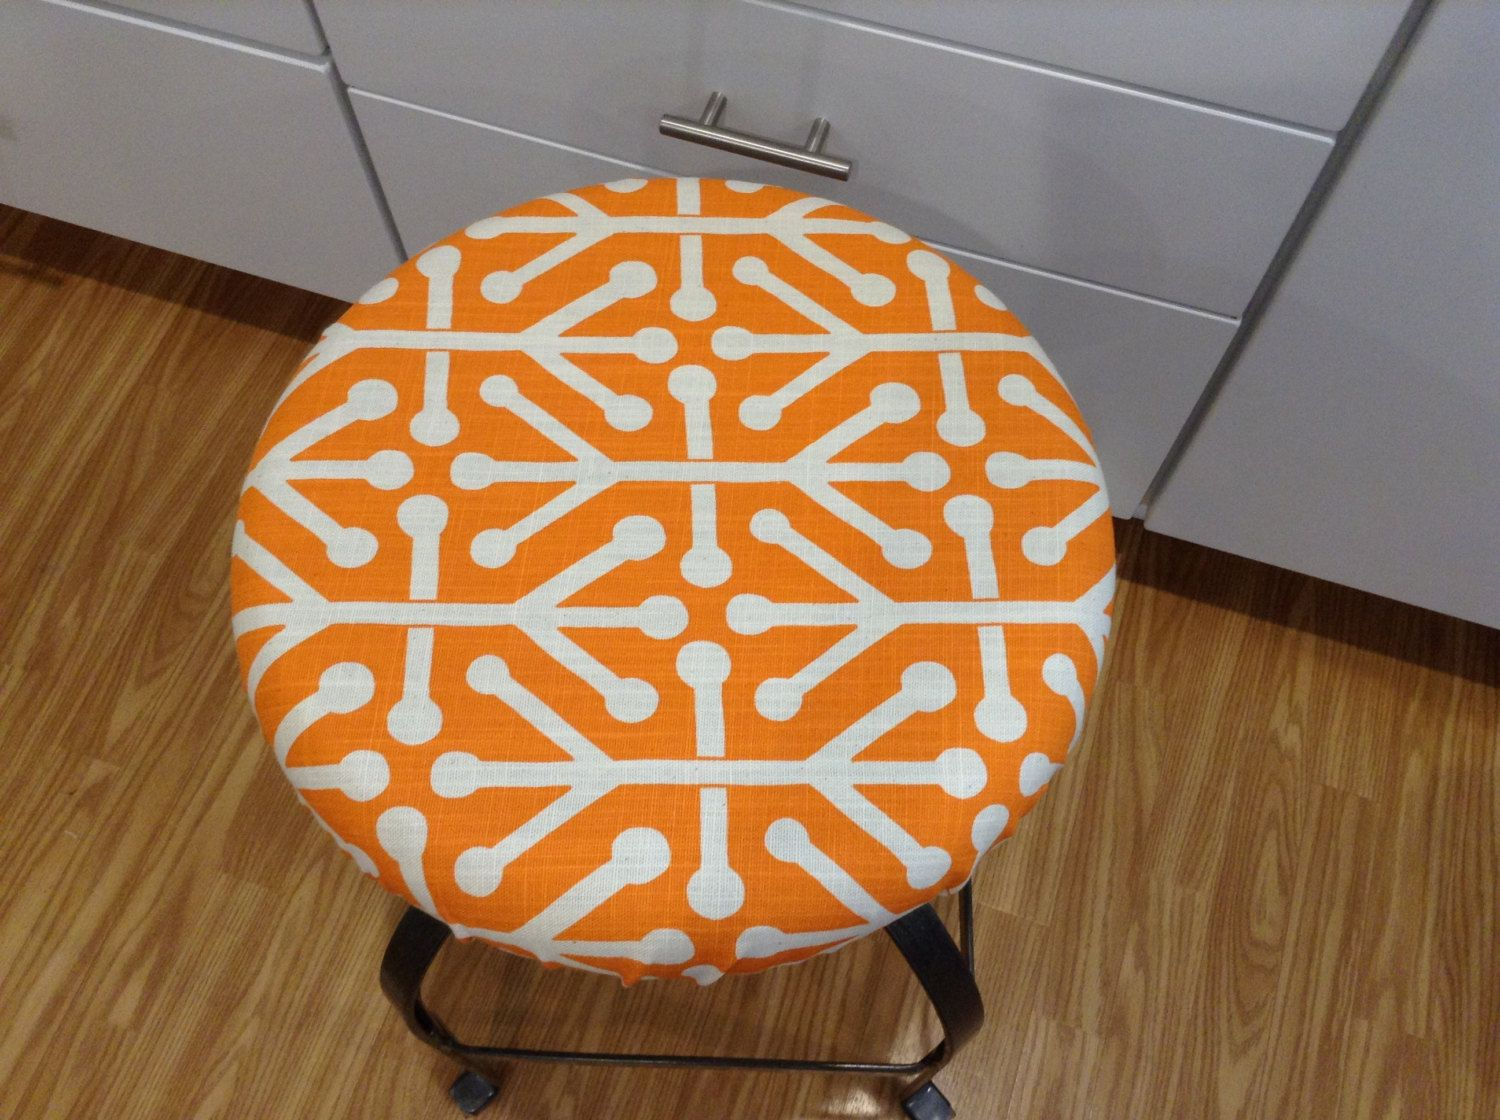 Elasticized Round Barstool Cover Counter Stool Orange On Cream Geometric Print Washable Cotton Fabric Kitchen Pad By Brittaleighdesigns